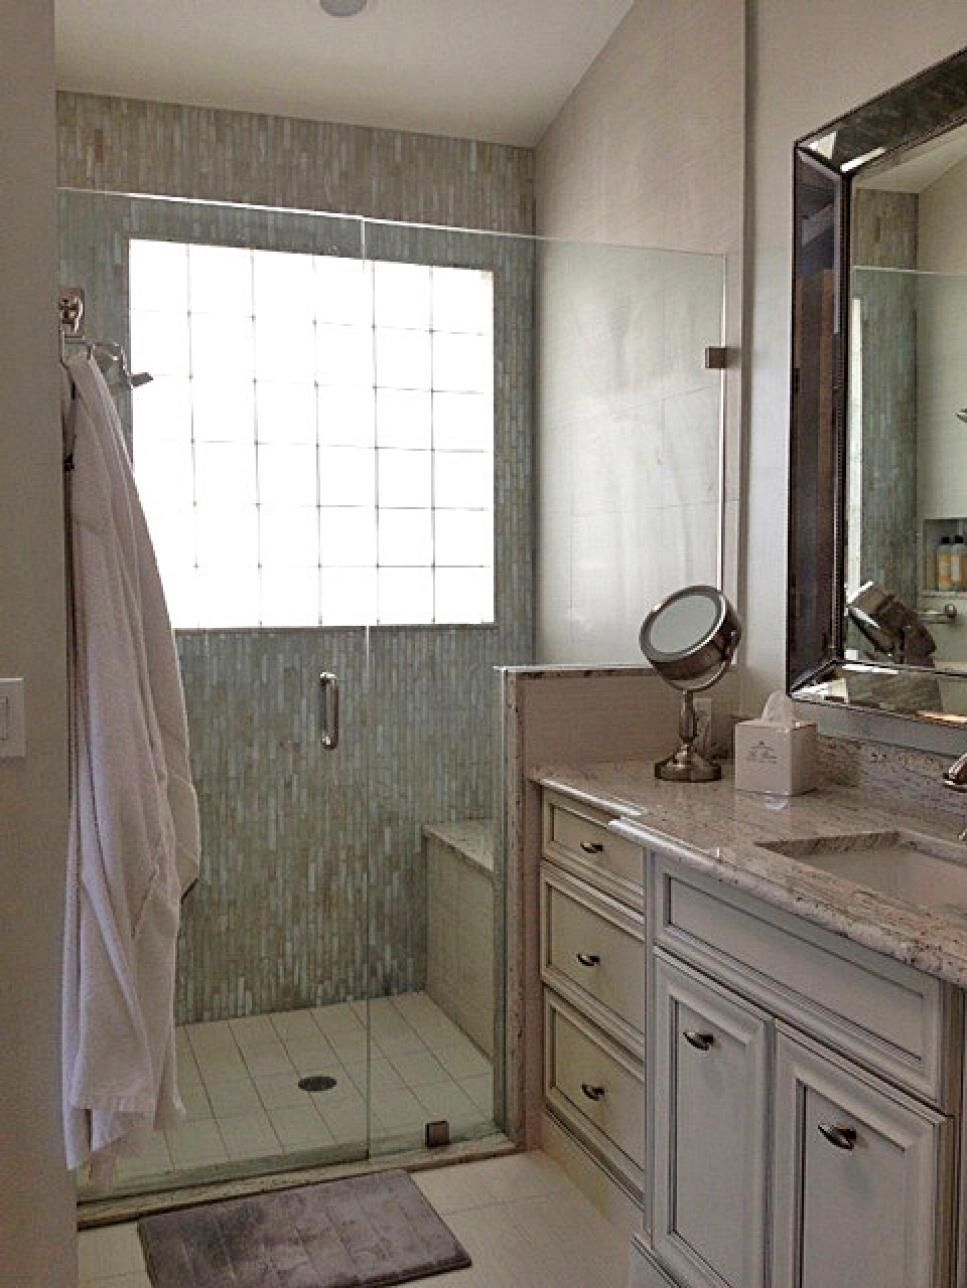 Browse Pictures Of A Master Bath Remodel Featuring Luxury Design Spa Like Elements